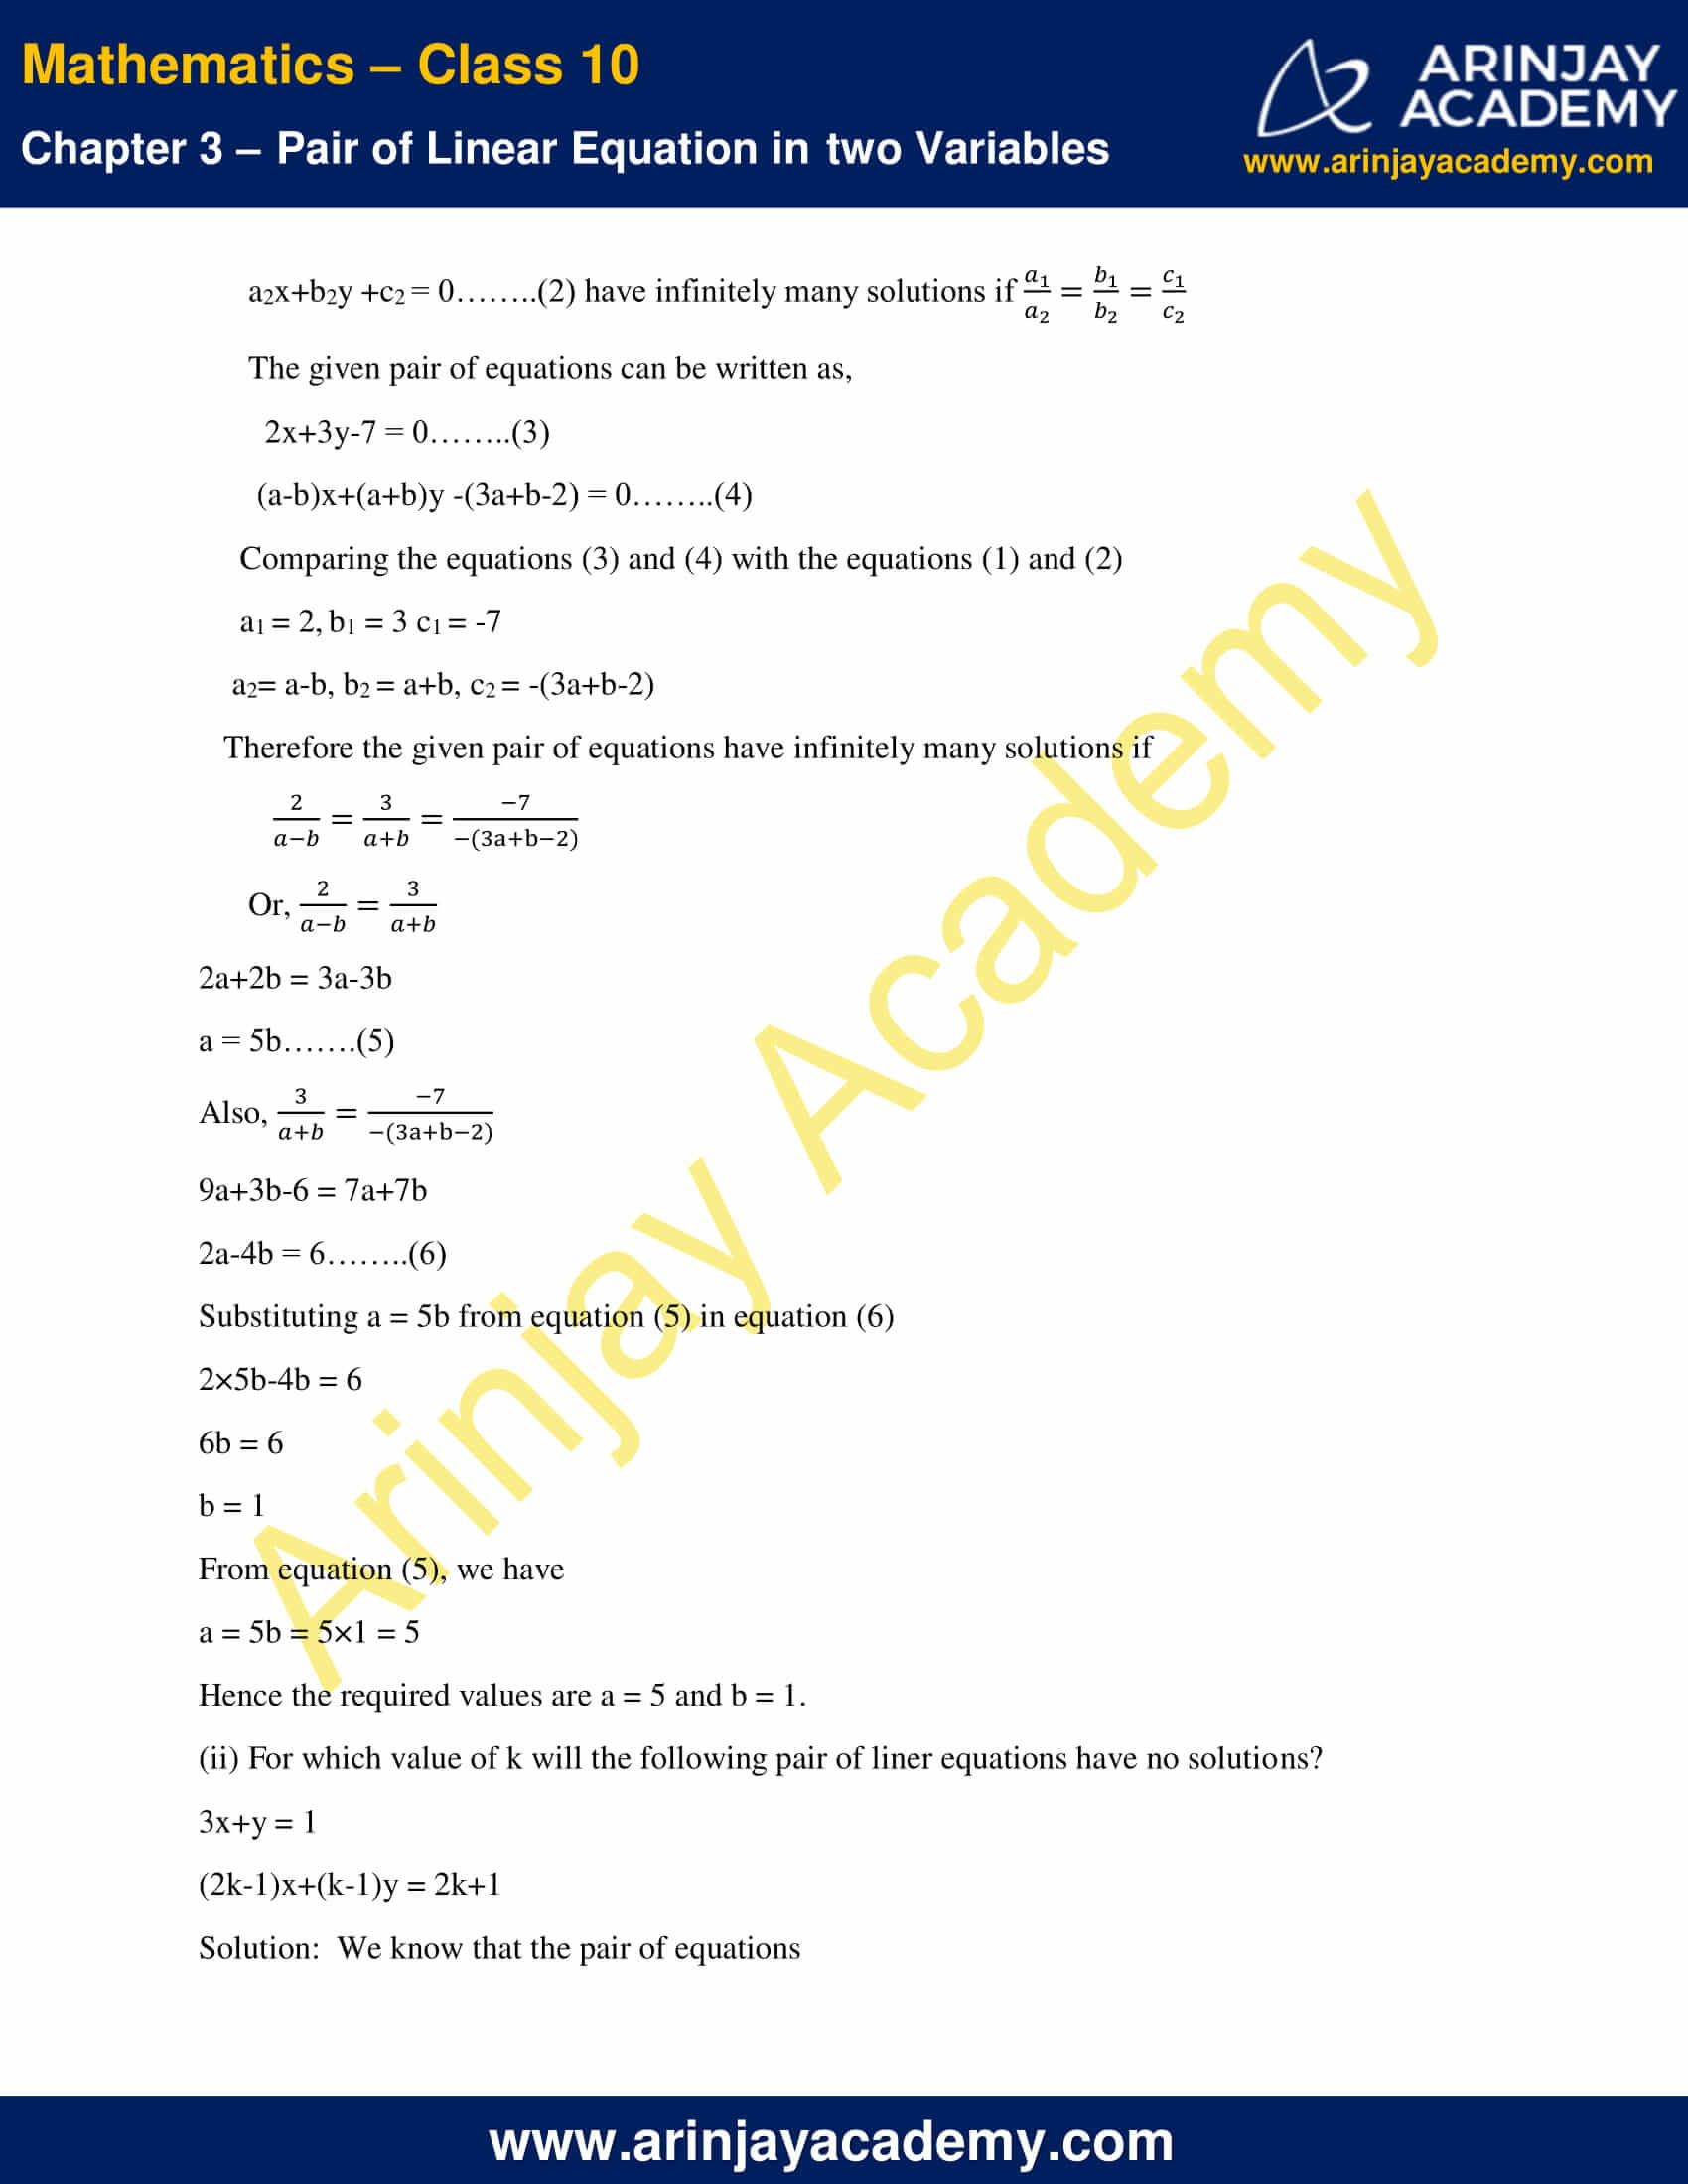 NCERT Solutions For Class 10 Maths Chapter 3 Exercise 3.5 image 4